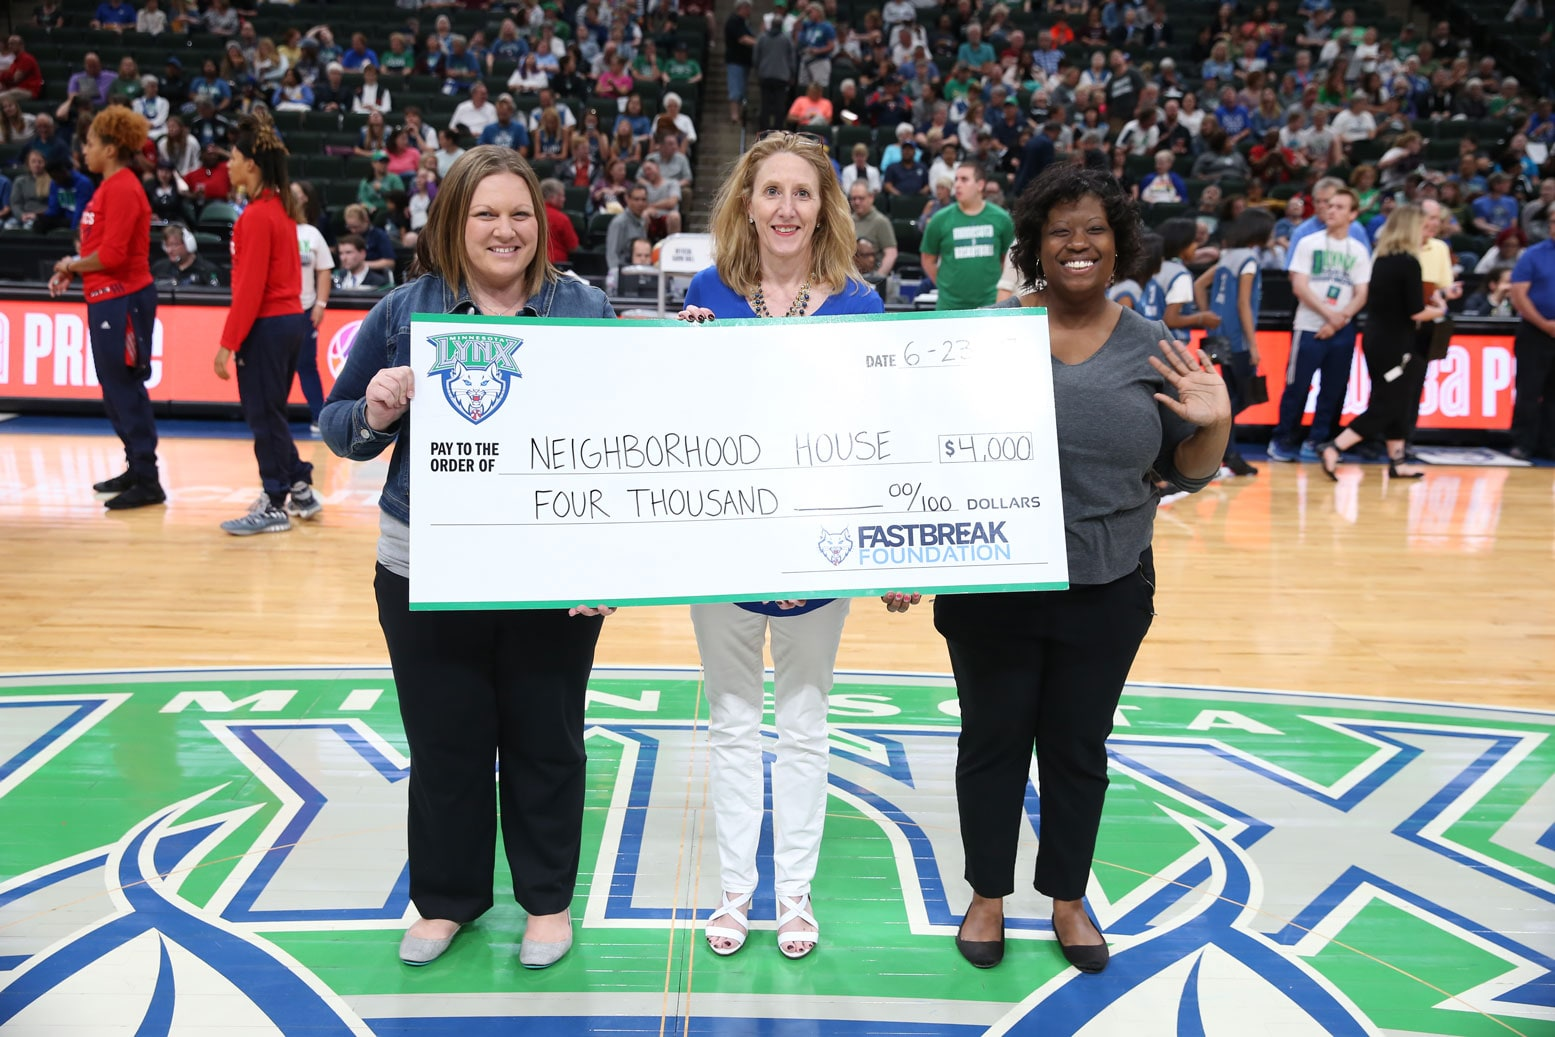 Lynx present grant to Neighborhood House